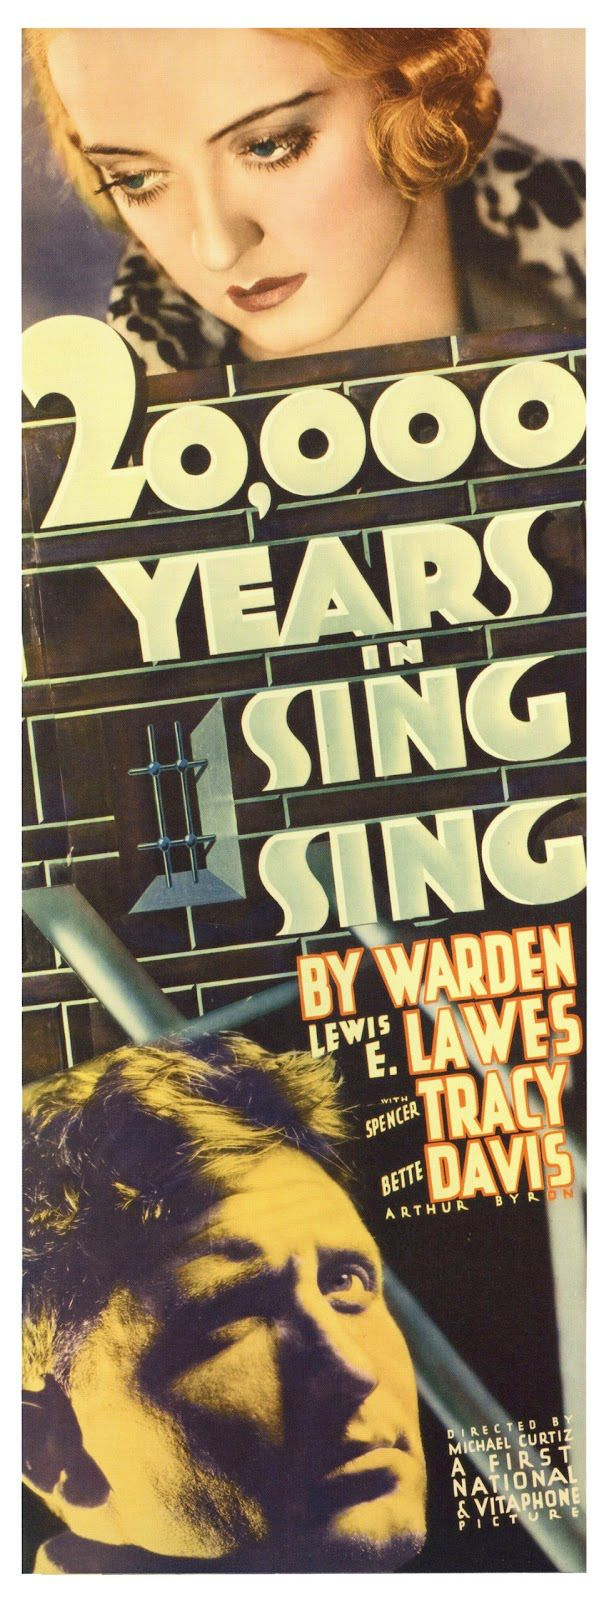 Bette Davis Spencer Tracy movie poster print 2 20,000 Years in Sing Sing 1932